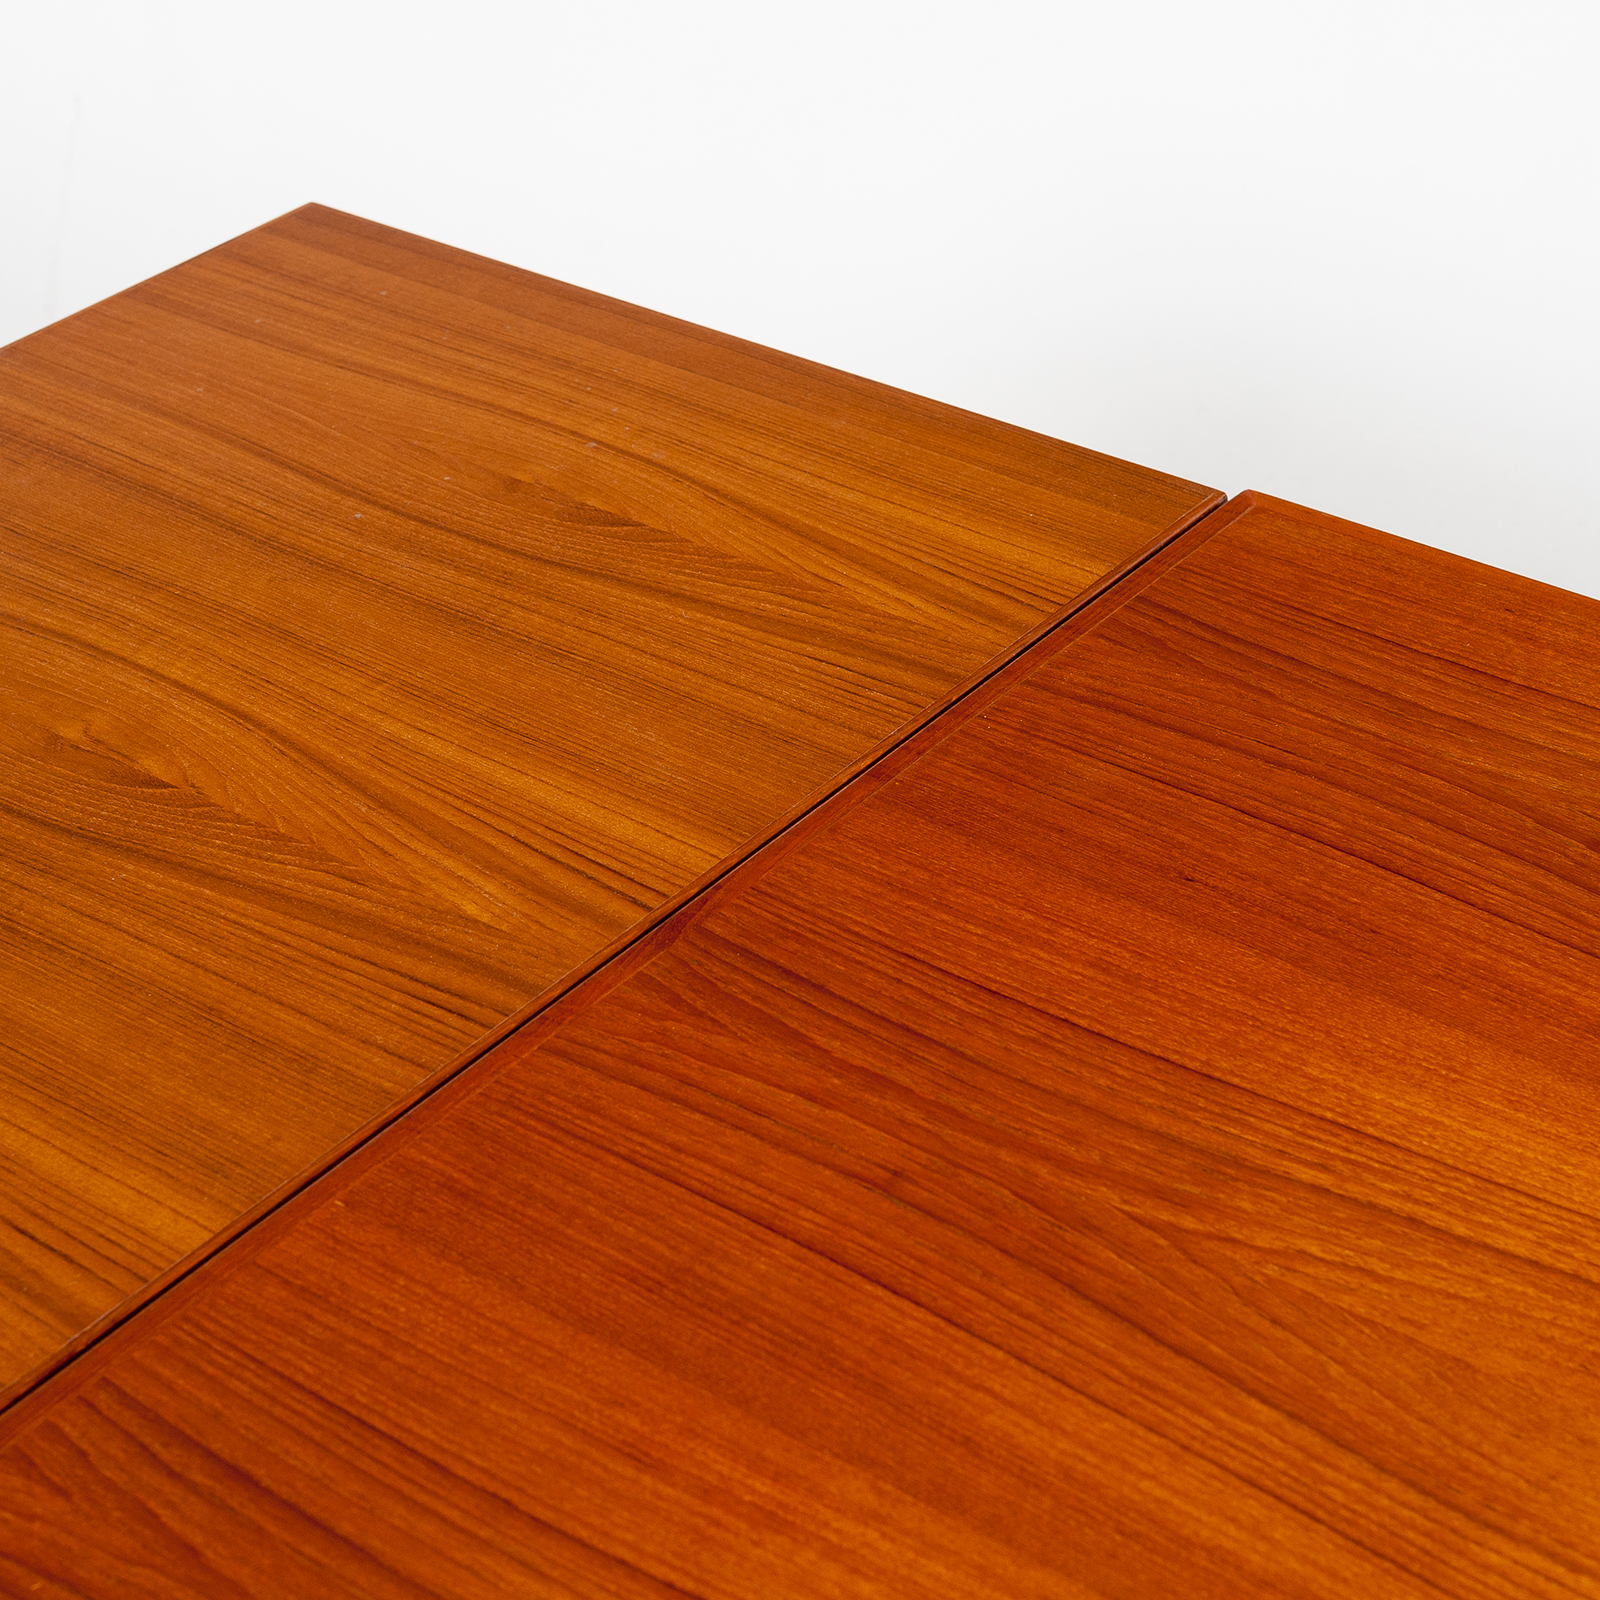 Dining Table In Teak With Concealed Top, 1960s, Denmark29